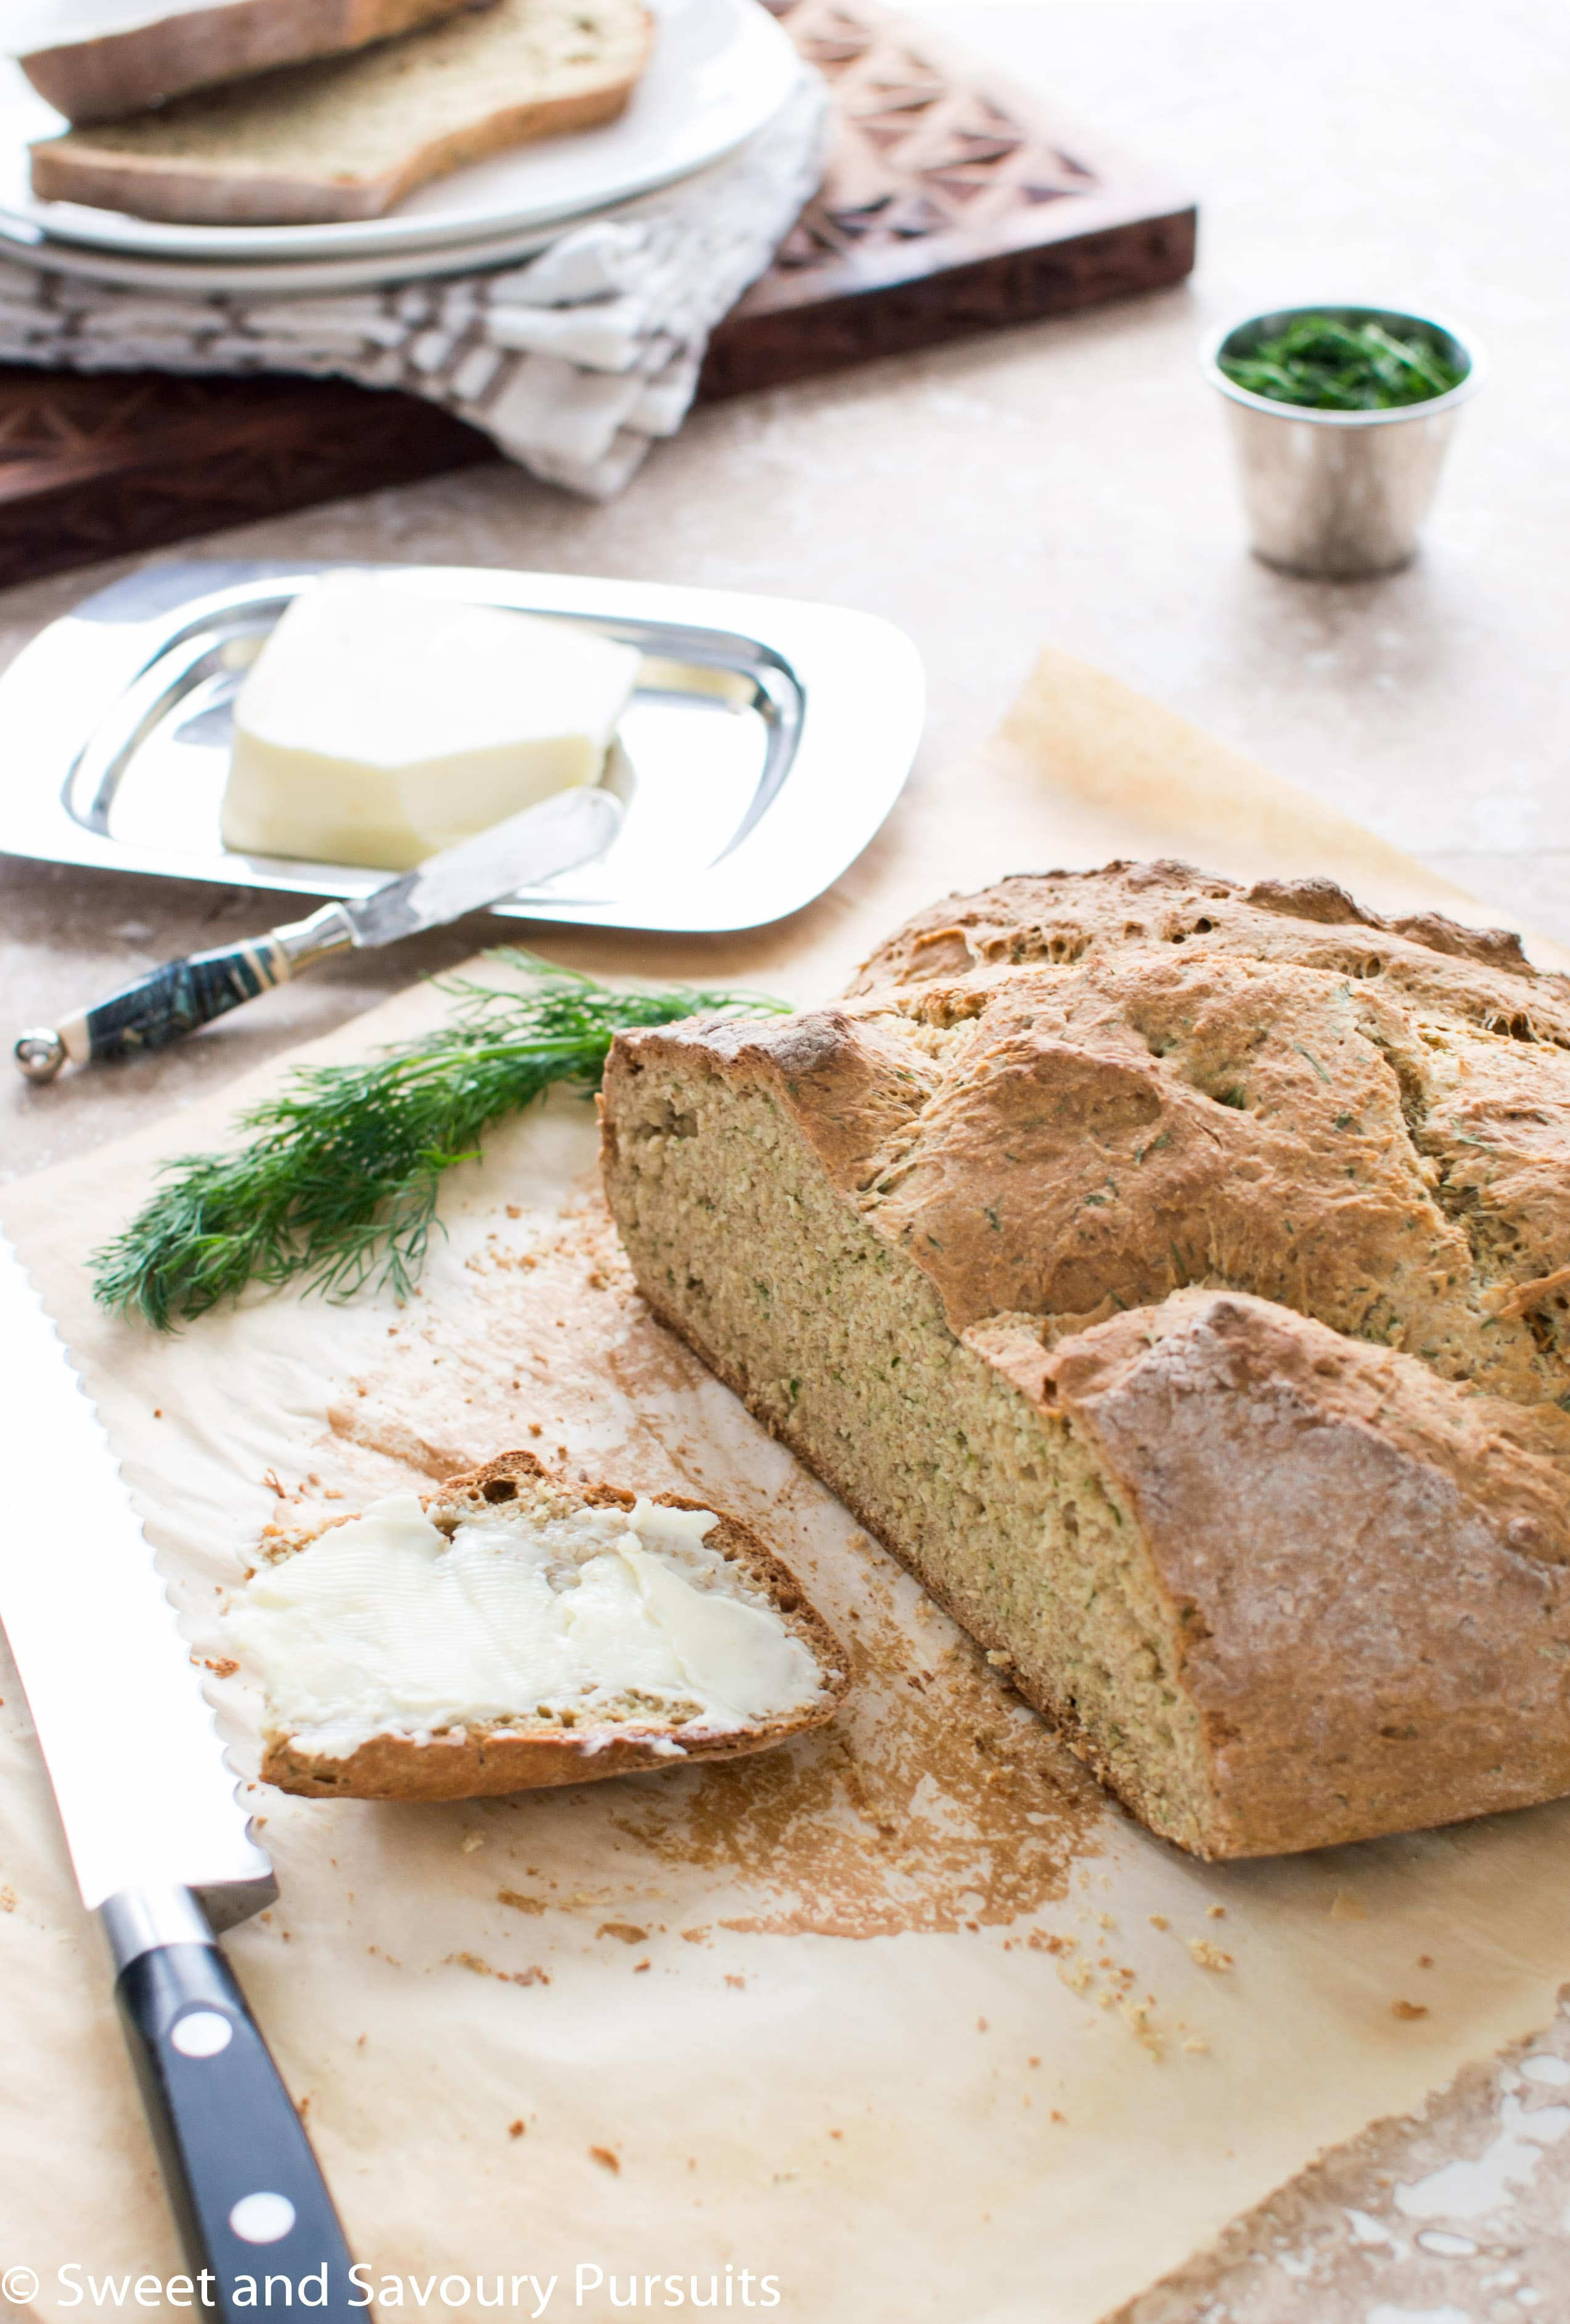 Irish Soda Bread with cut and buttered slice.